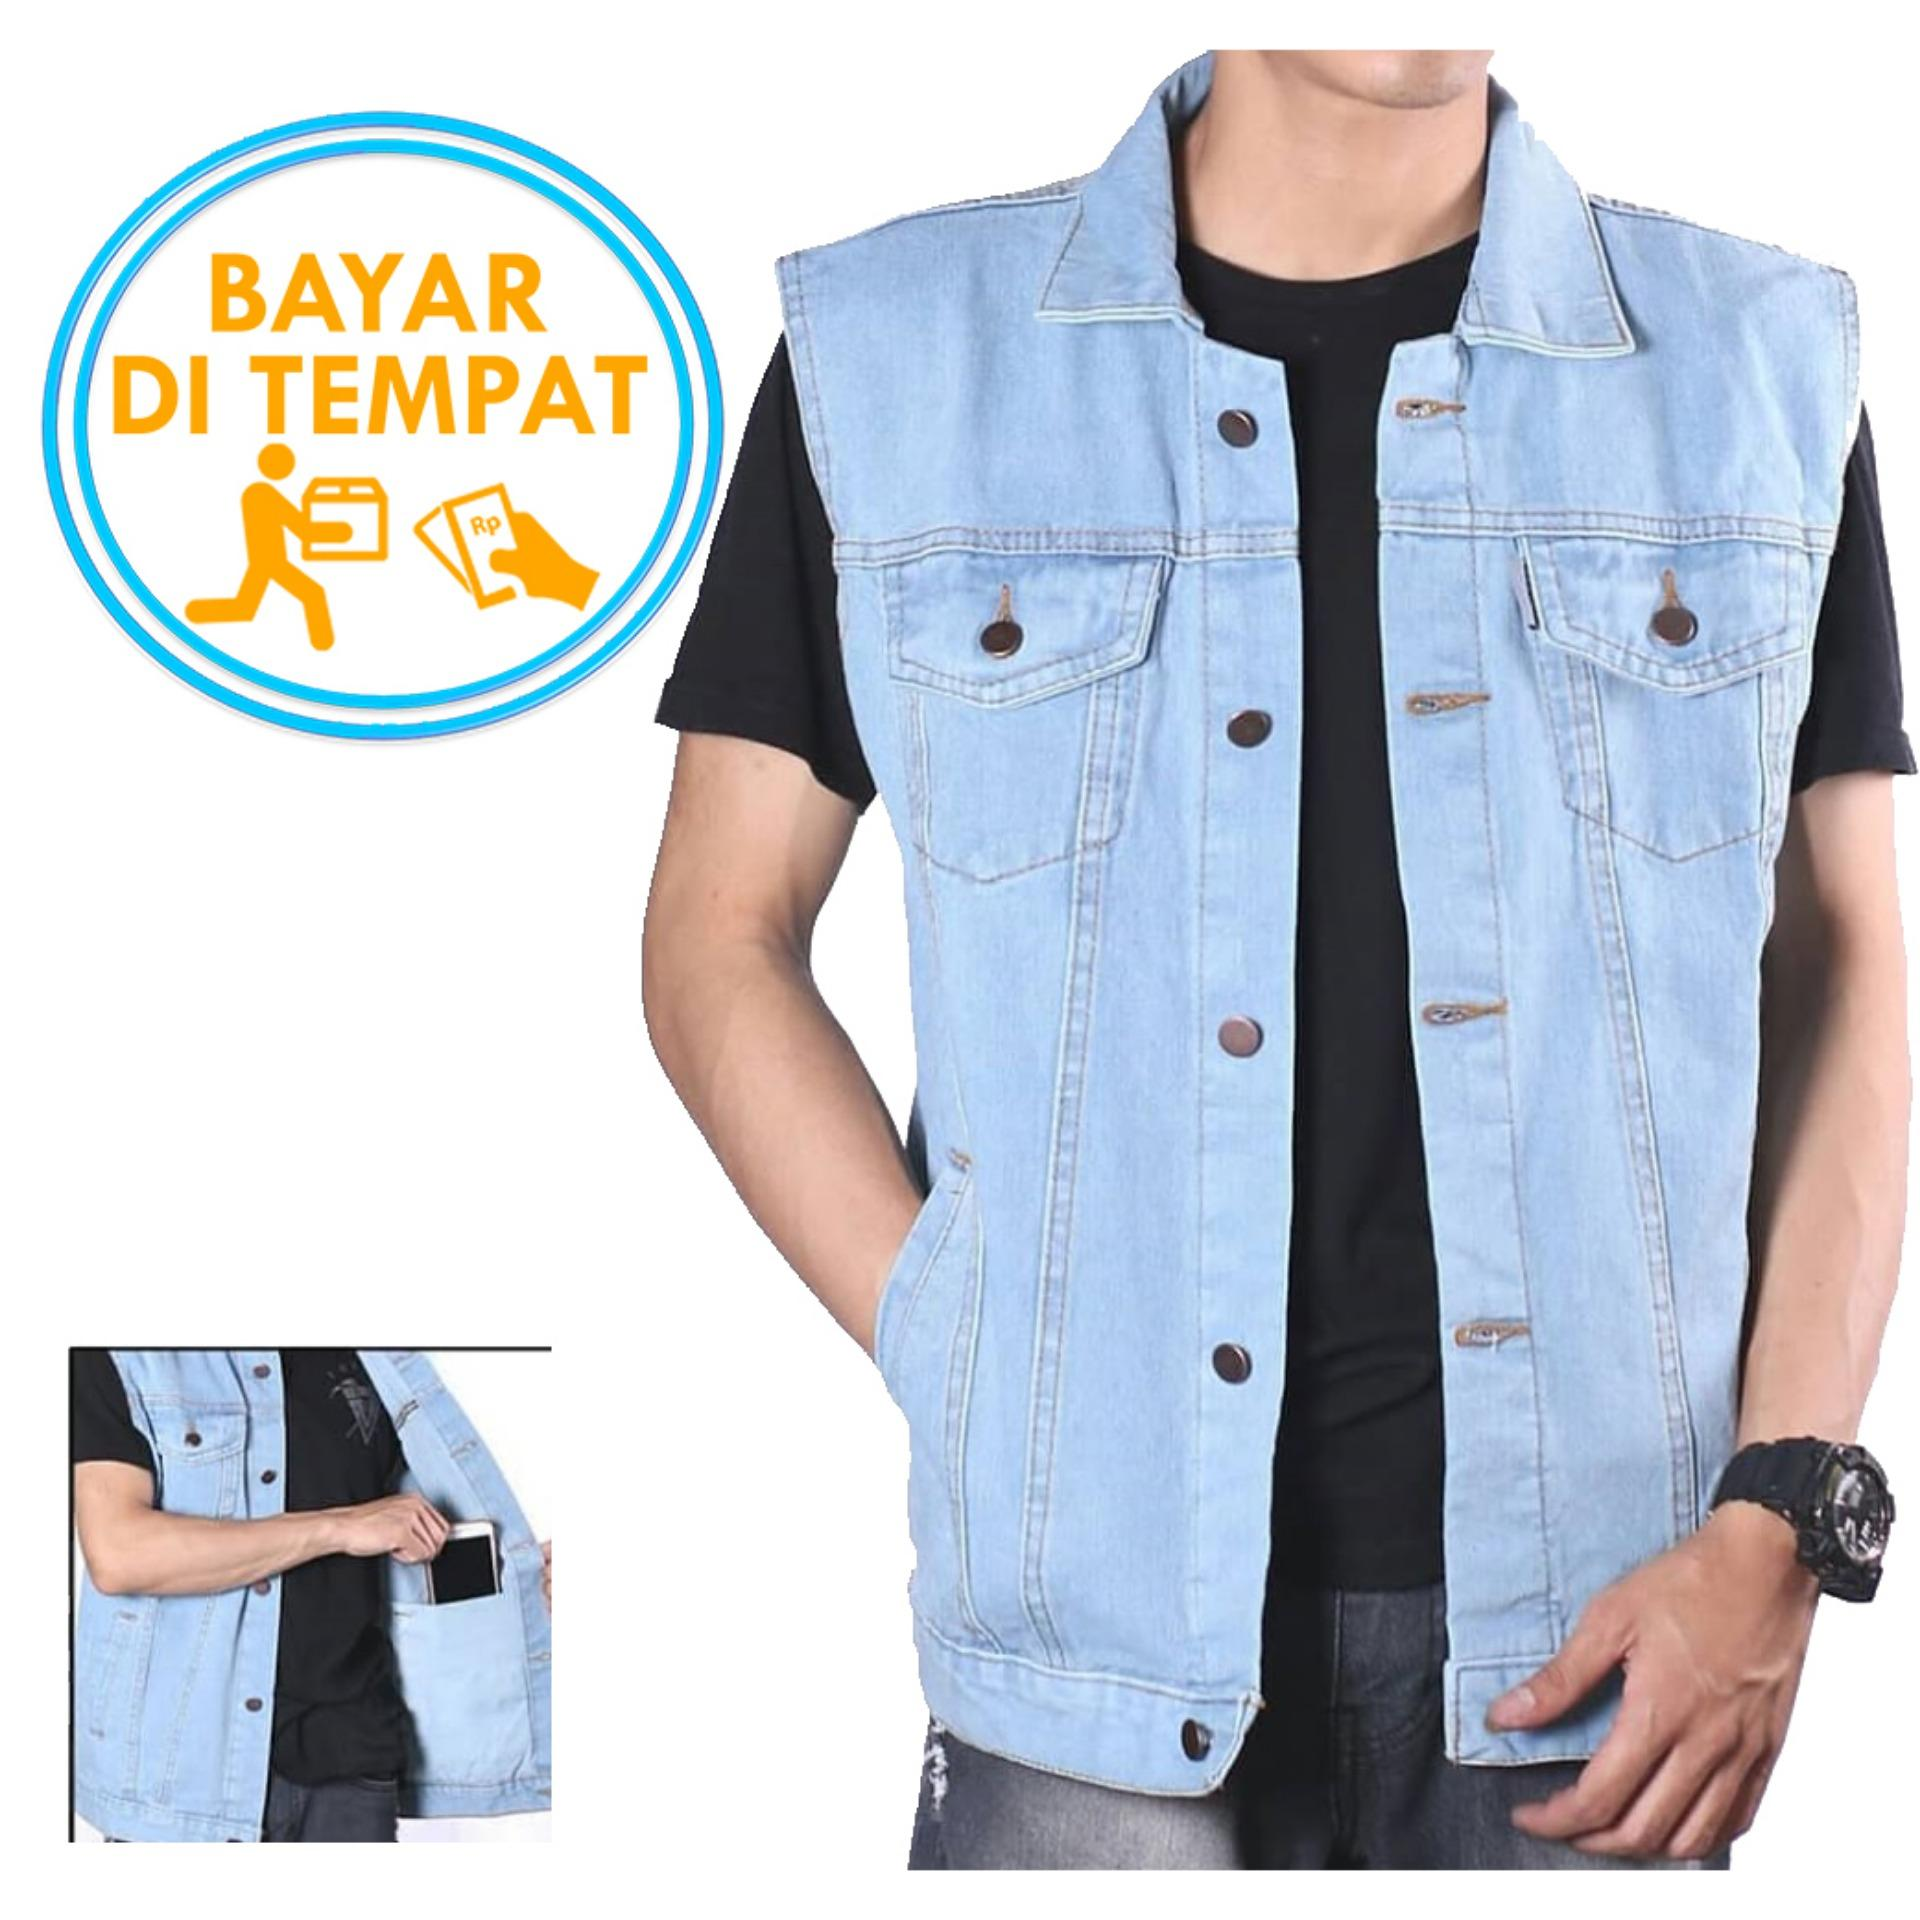 Vest Rompi Jeans Premium Light Blue Best Seller Promo Beli 1 Gratis 1